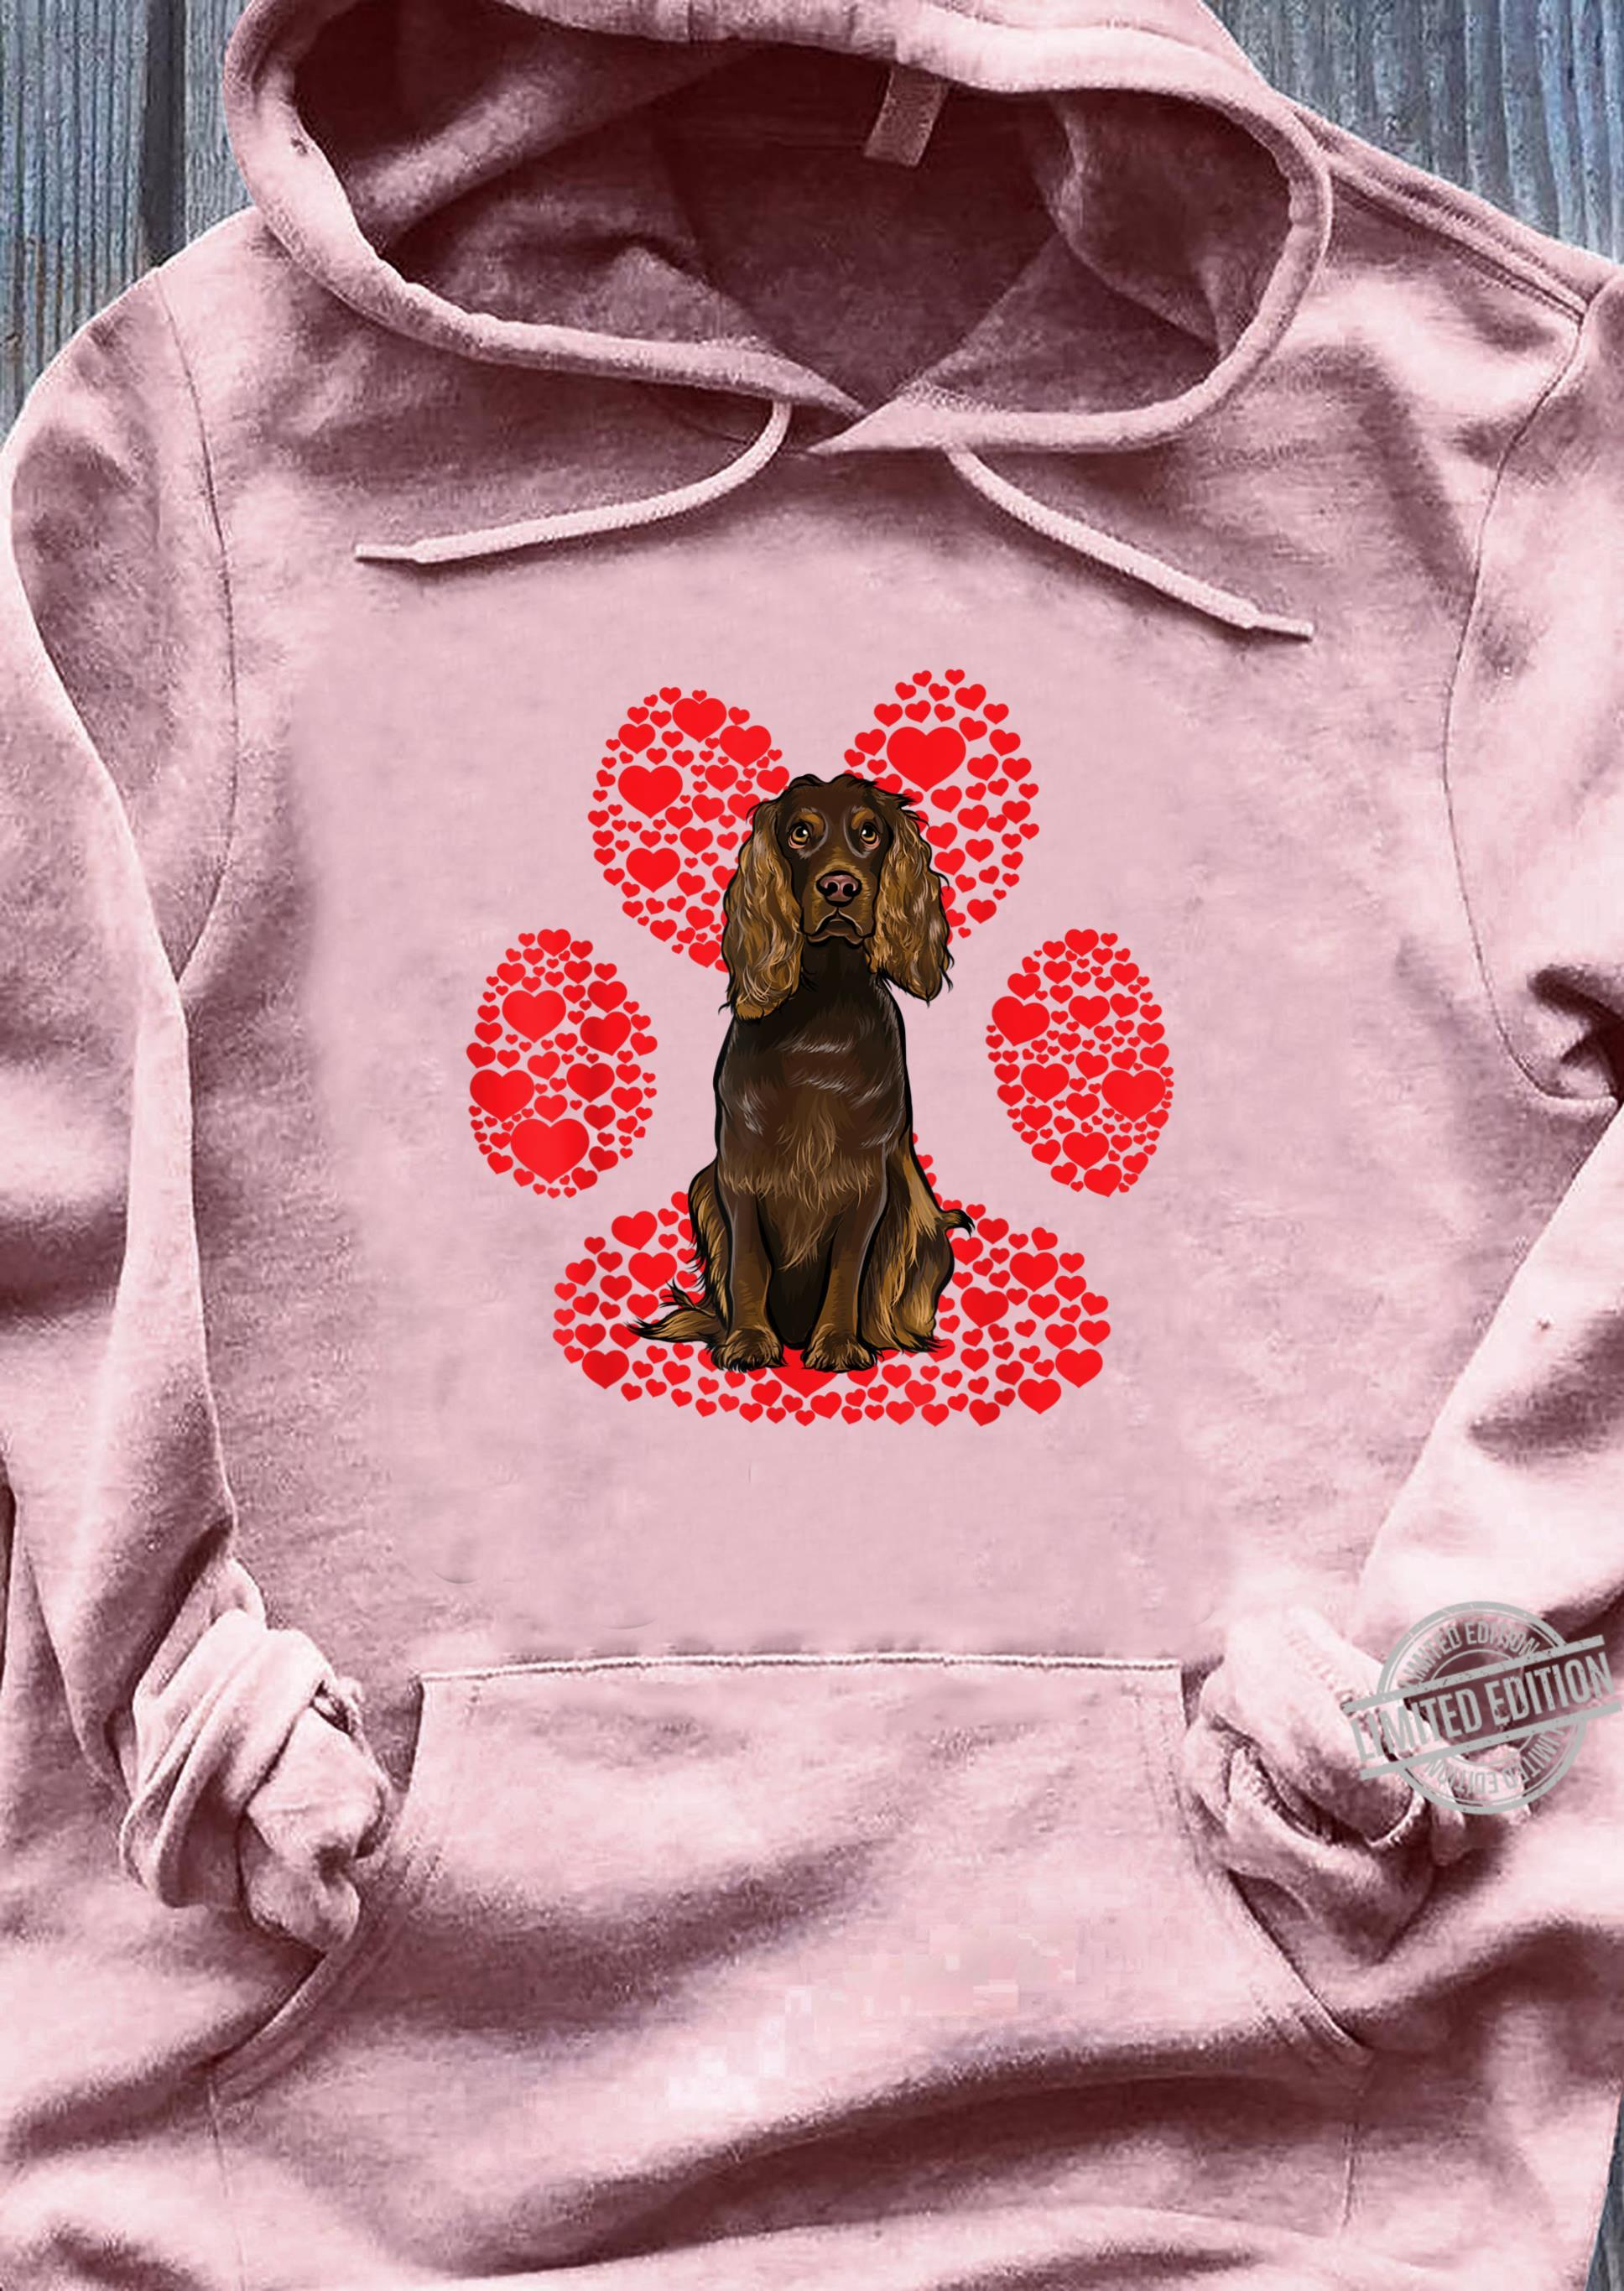 hoodie design for dog lovers modified for Valentine's Day